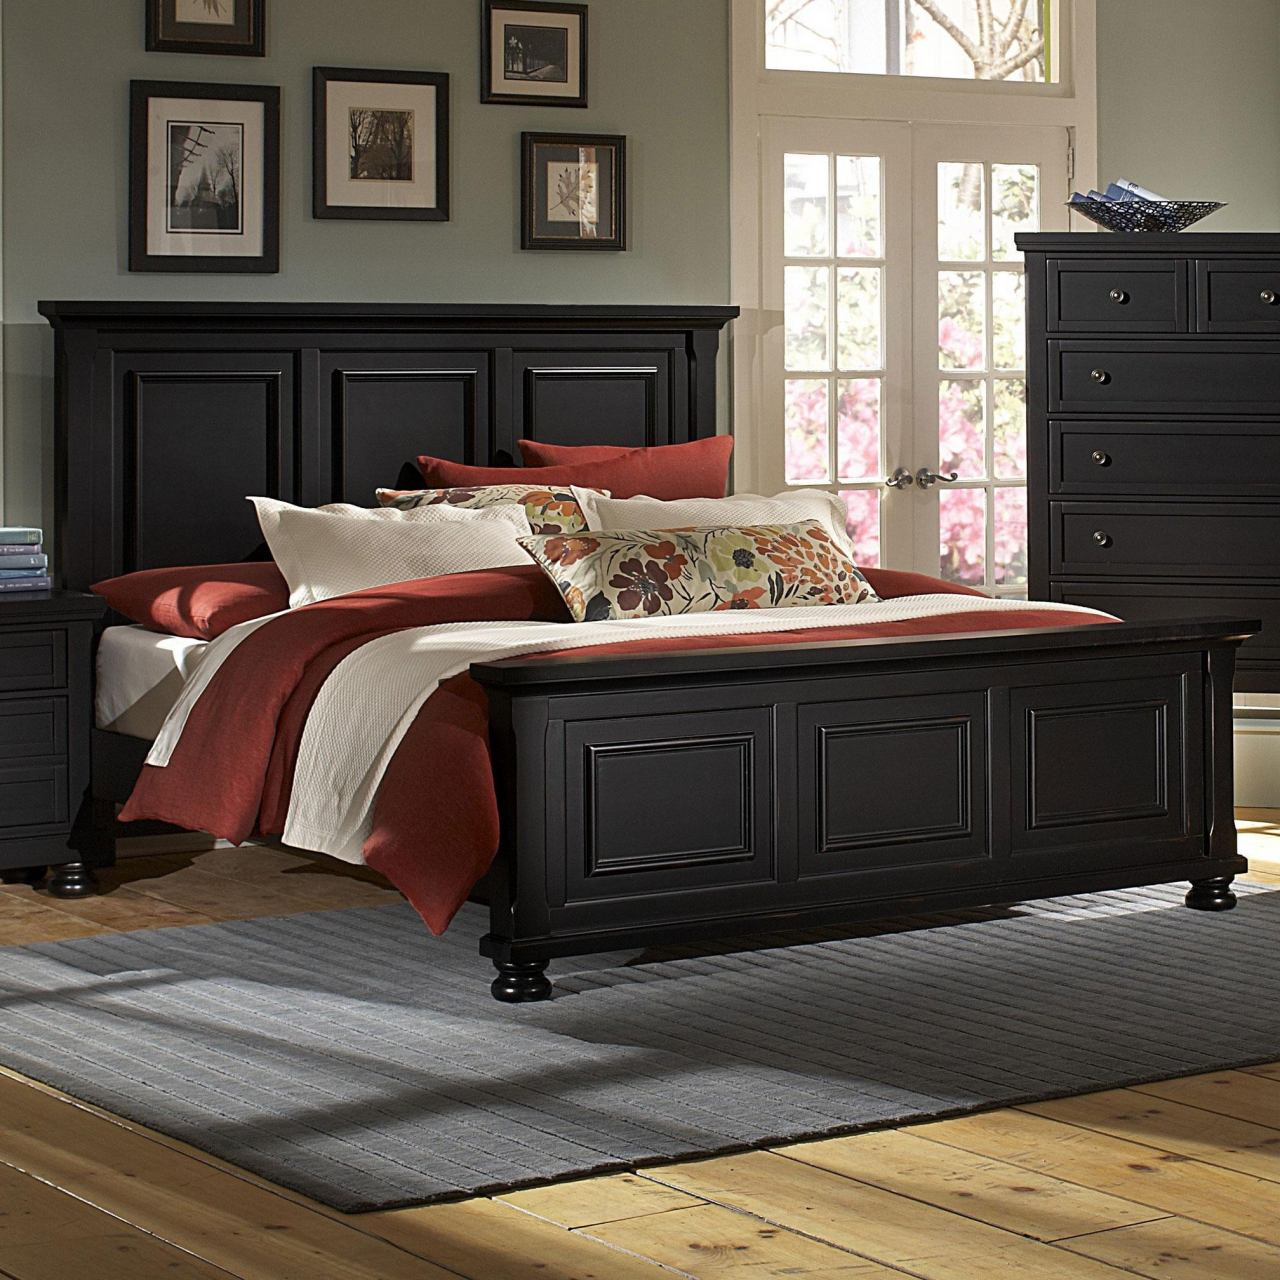 All-American Reflections California King Panel Mansion Bed in Ebony